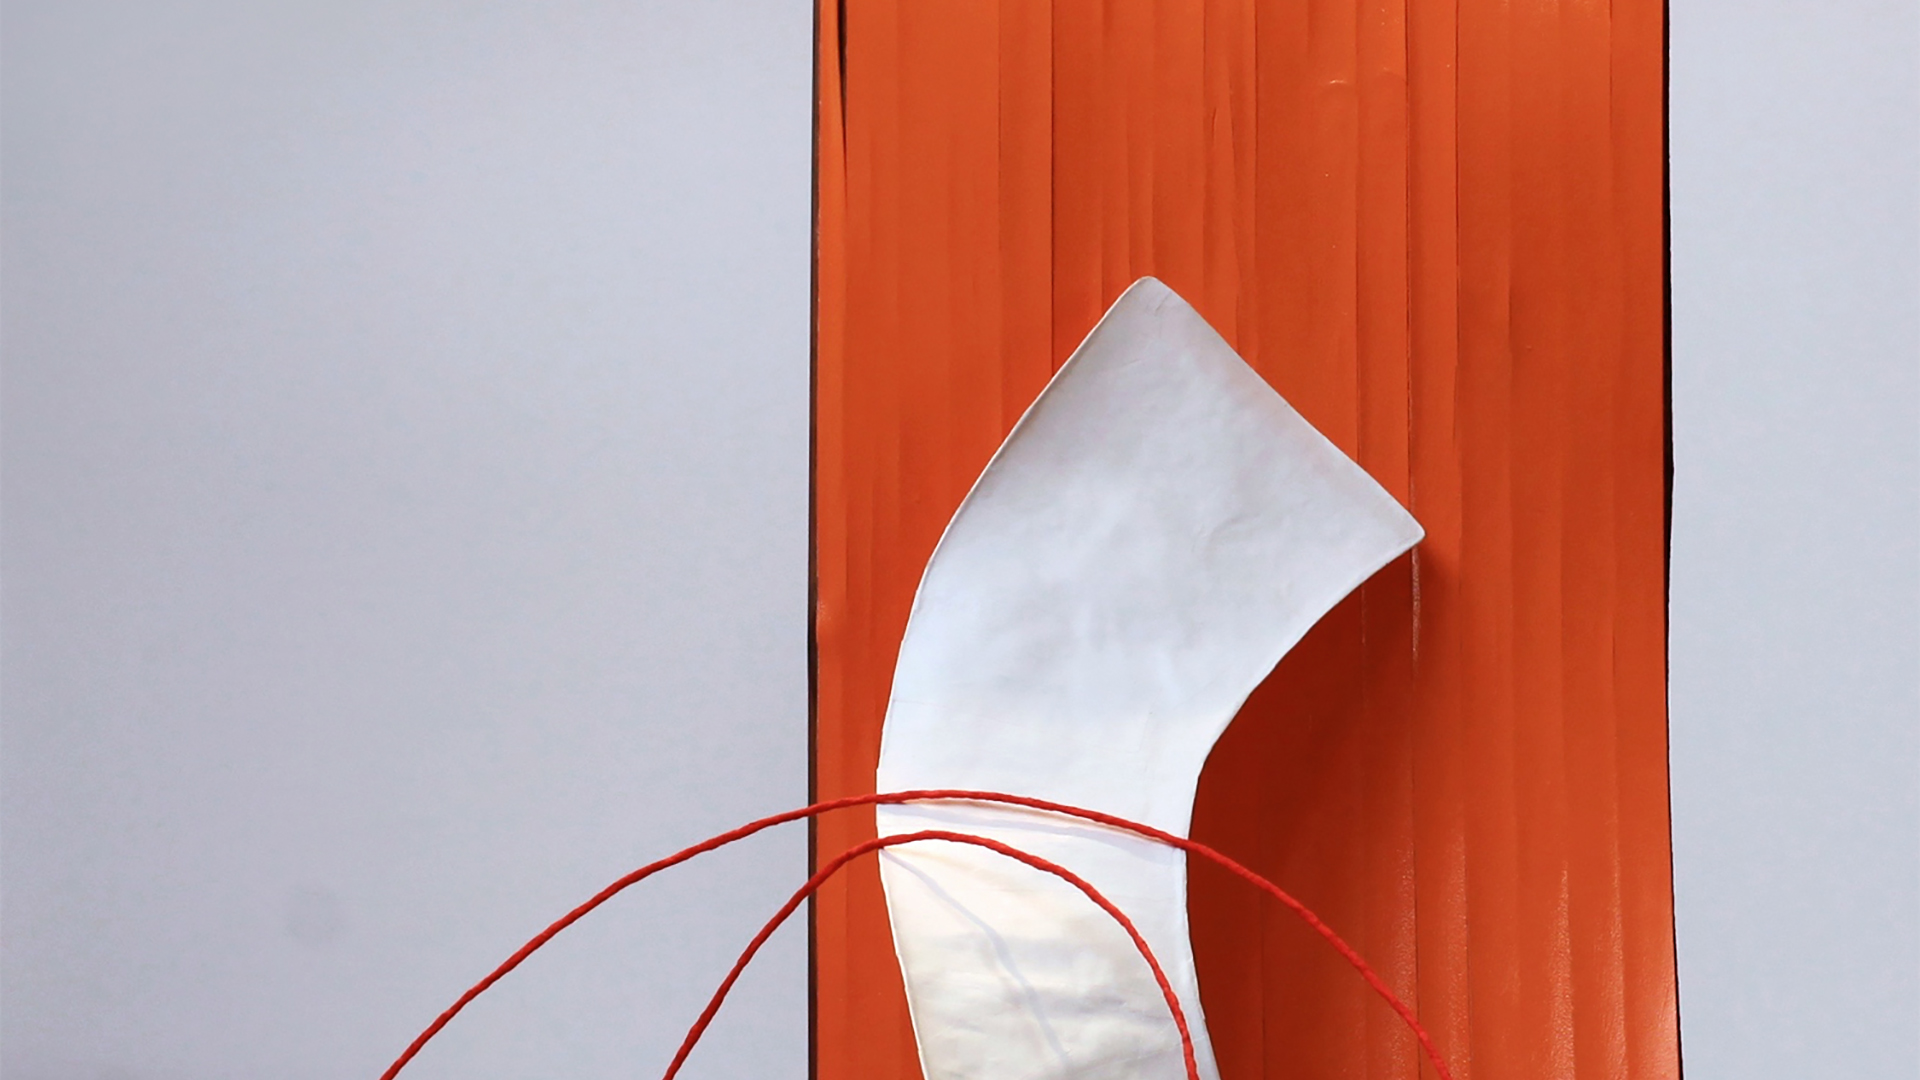 Contemporary Sculpture in Context   Online-only exhibition curated by Mitchell Donaldson  Featuring Jordan Azcune, Zoe Knight, and Fairy Turner  23 February 2018